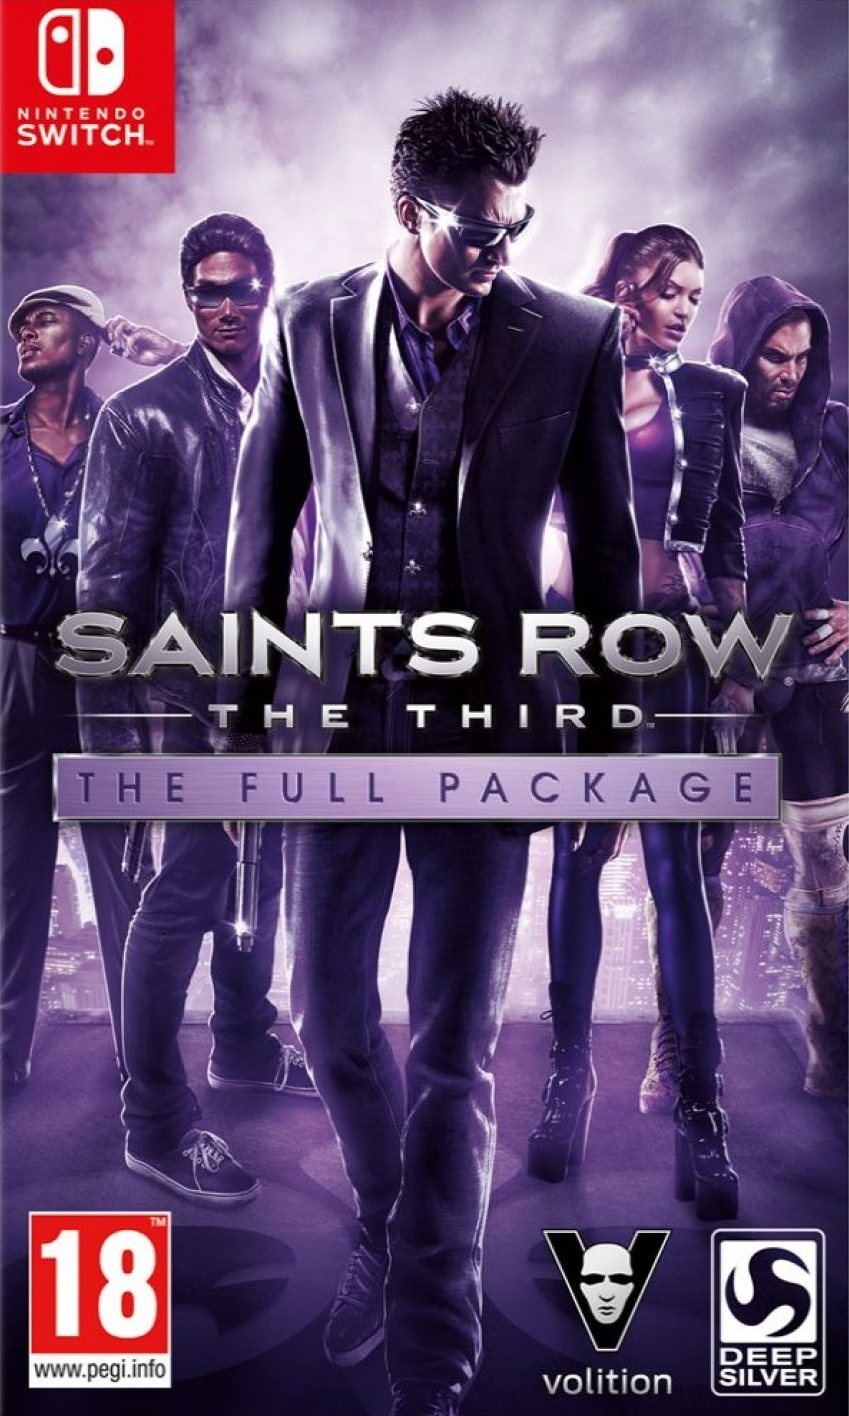 saints-row-the-third-the-full-package-571413.1.jpg